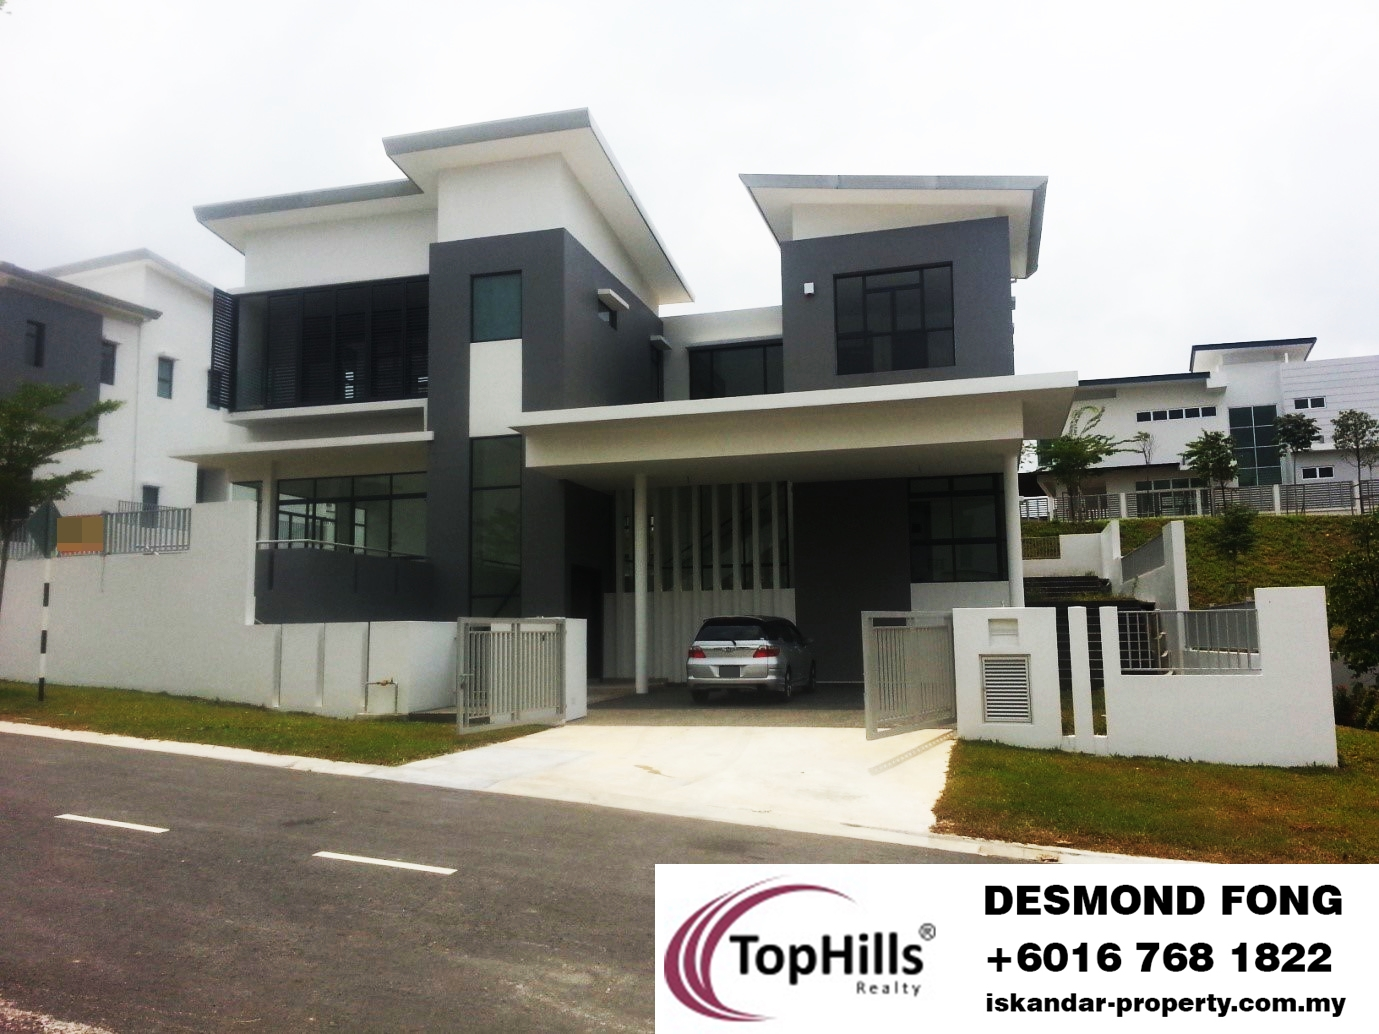 The hills horizon hills brand new 2 storey bungalow for for Two storey bungalow